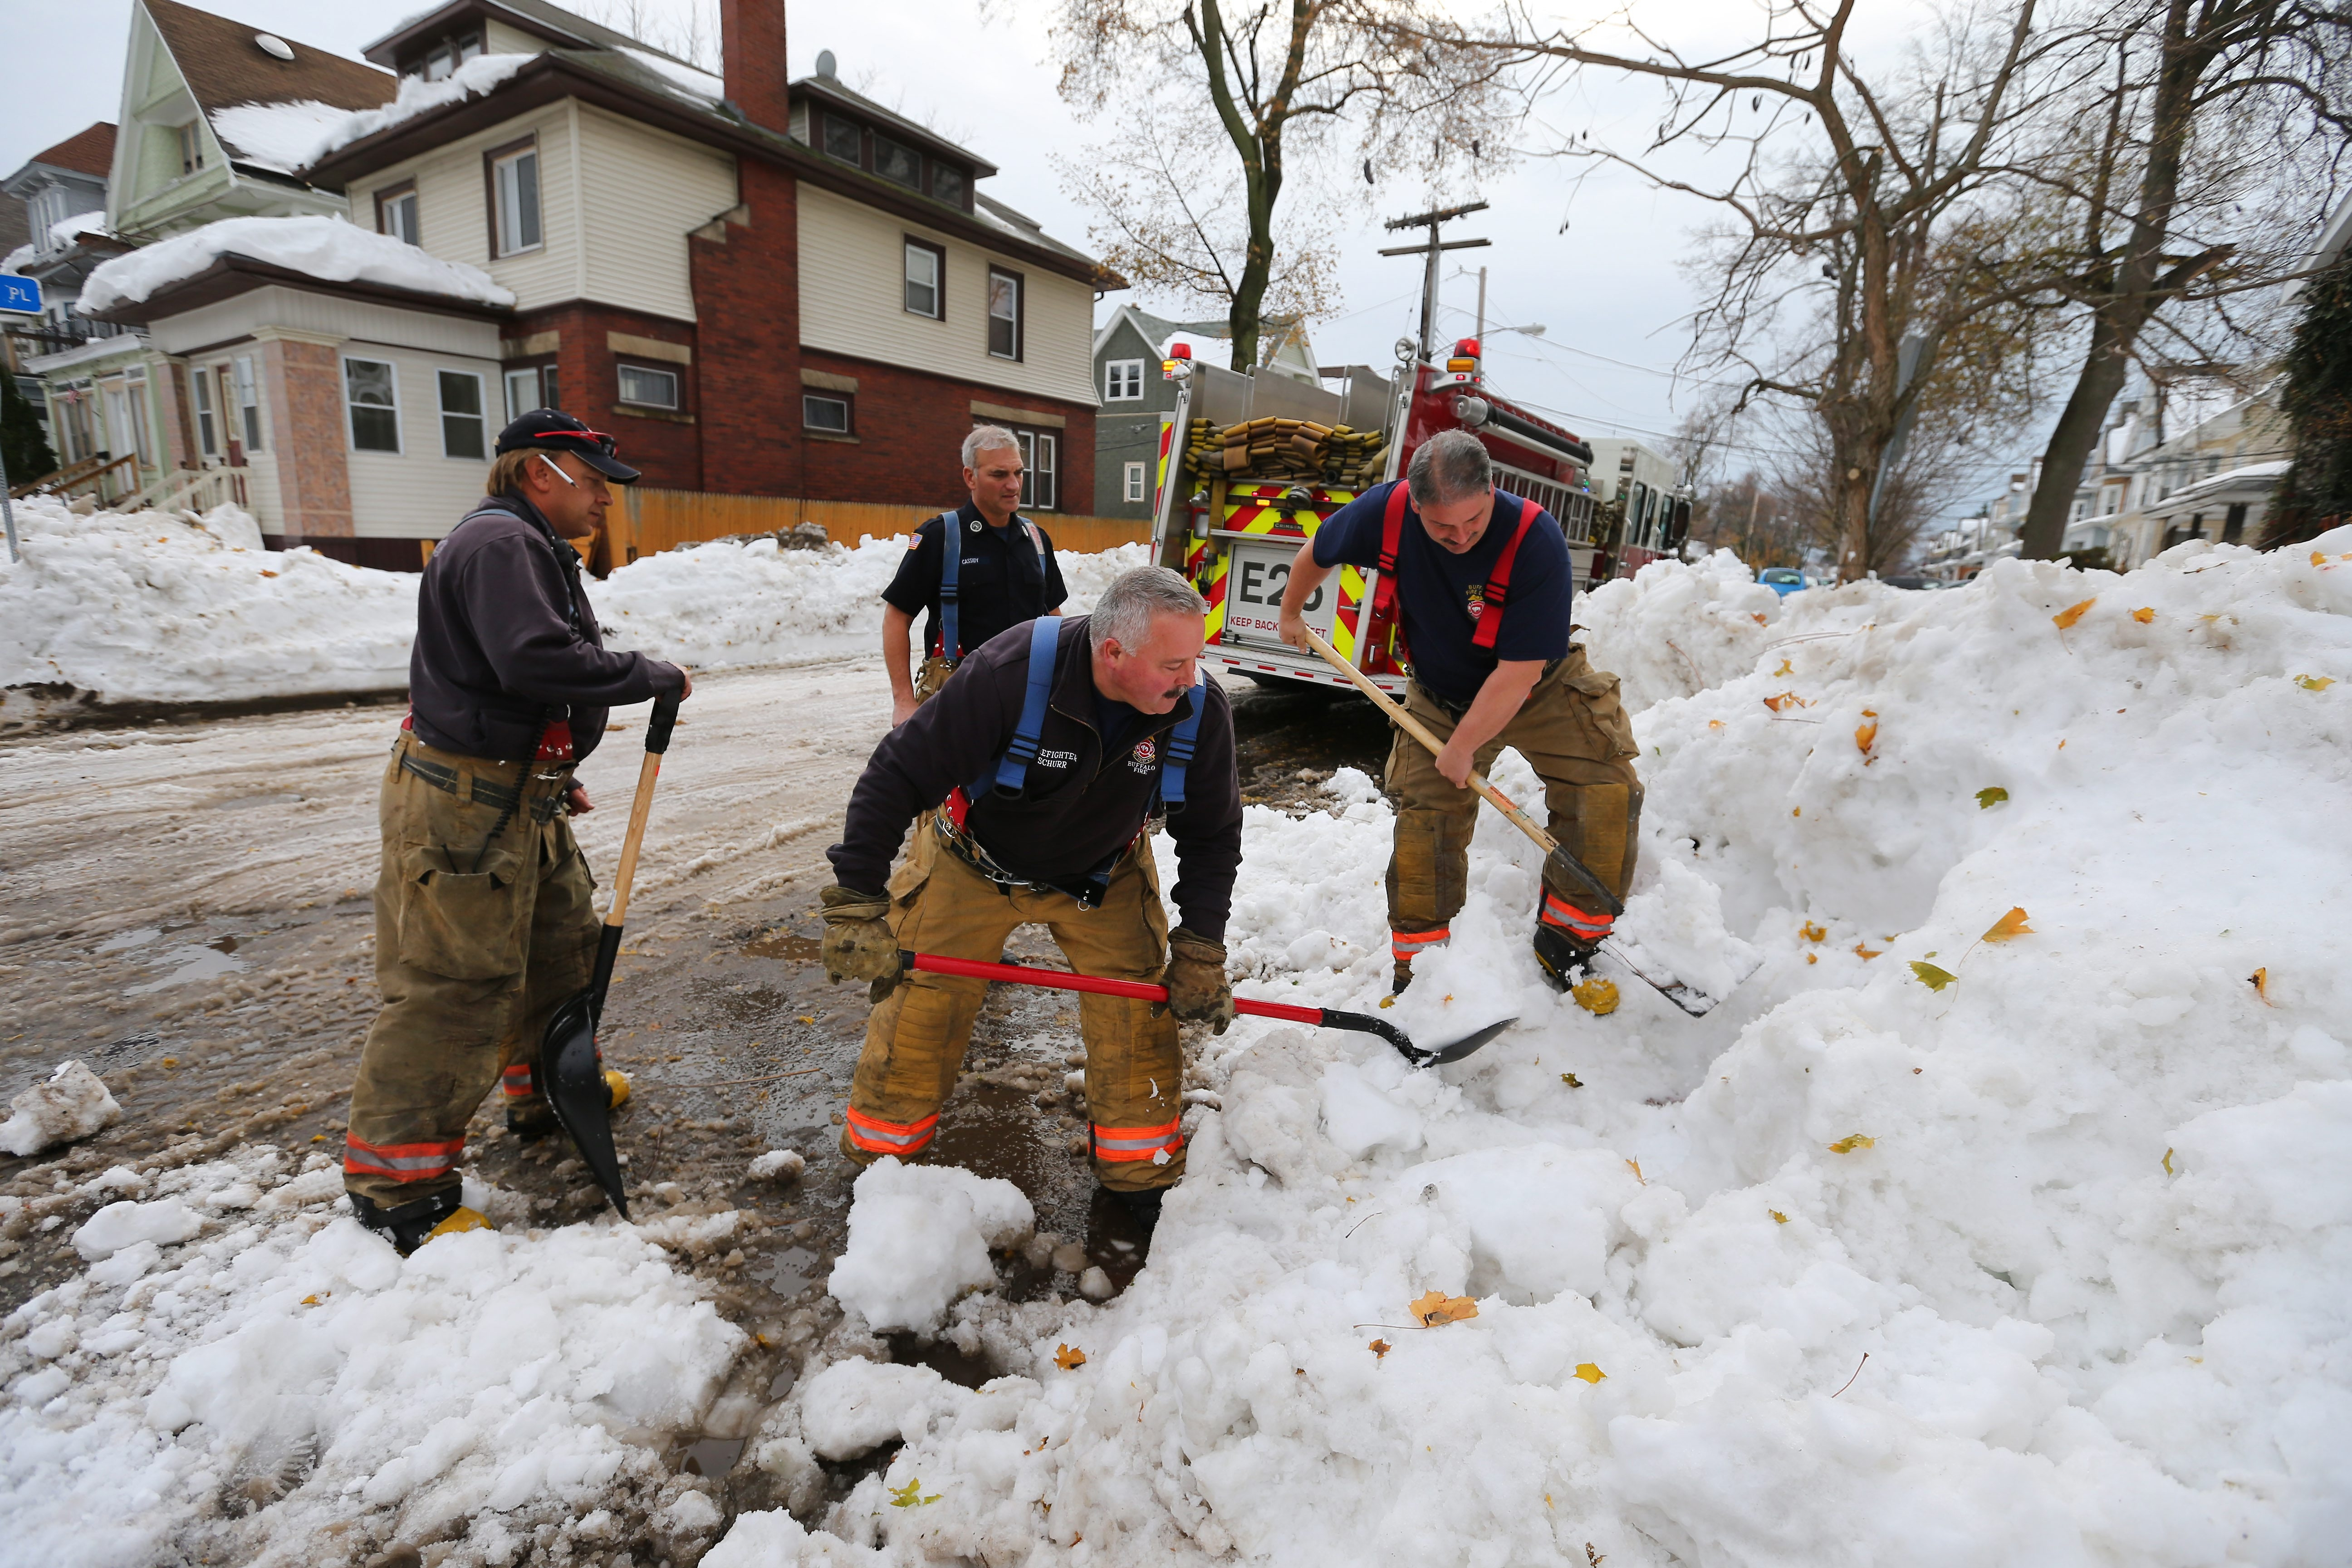 Buffalo firefighters from Engine 25 try to locate a fire hydrant on the corner of Paul Place and Seneca Street in South Buffalo on Nov. 23.